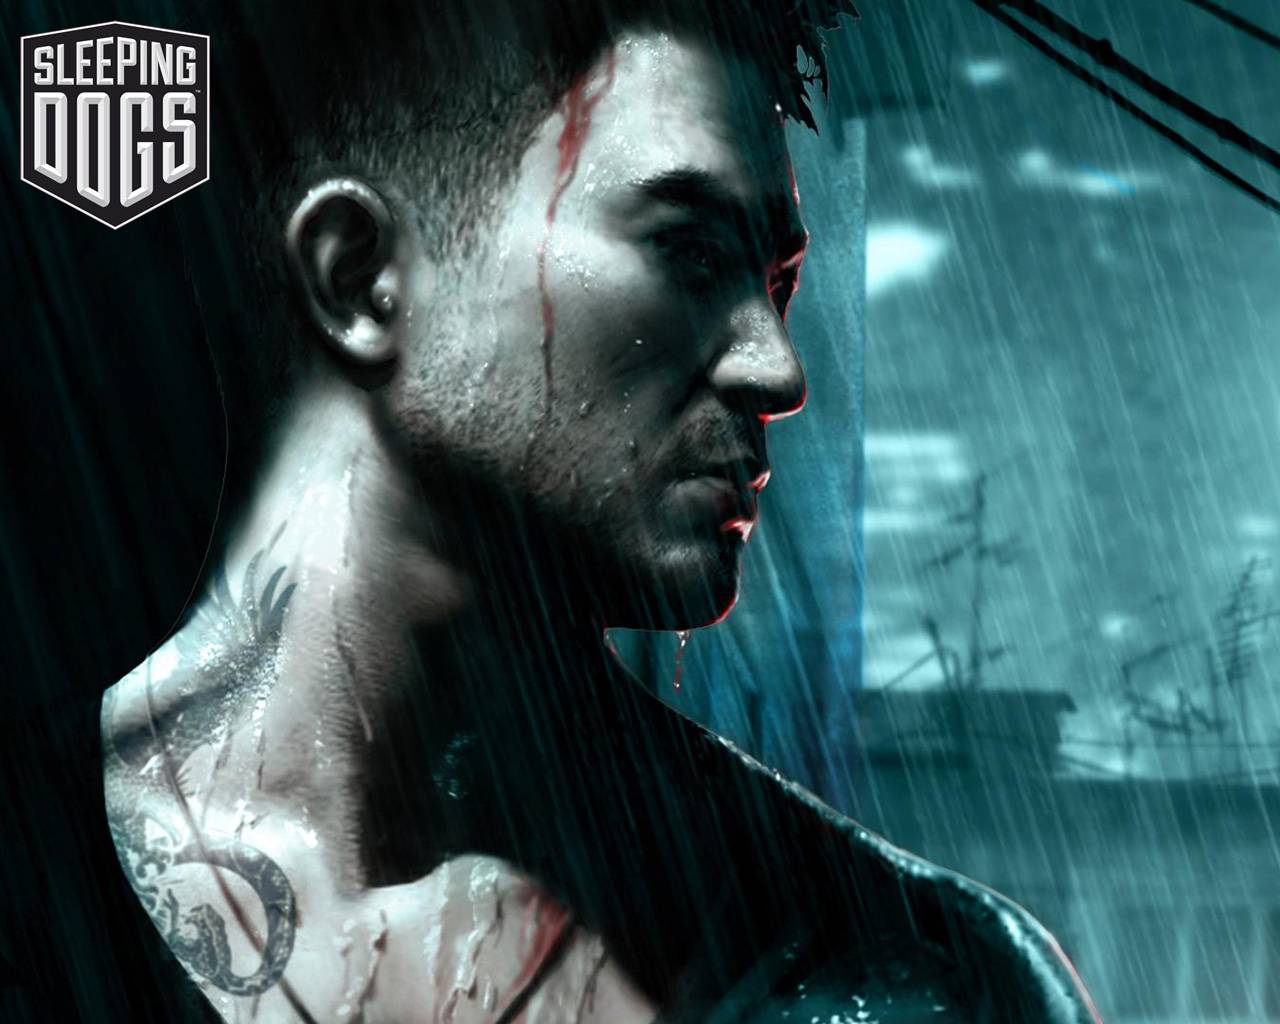 Sleeping Dogs Wallpaper In HD